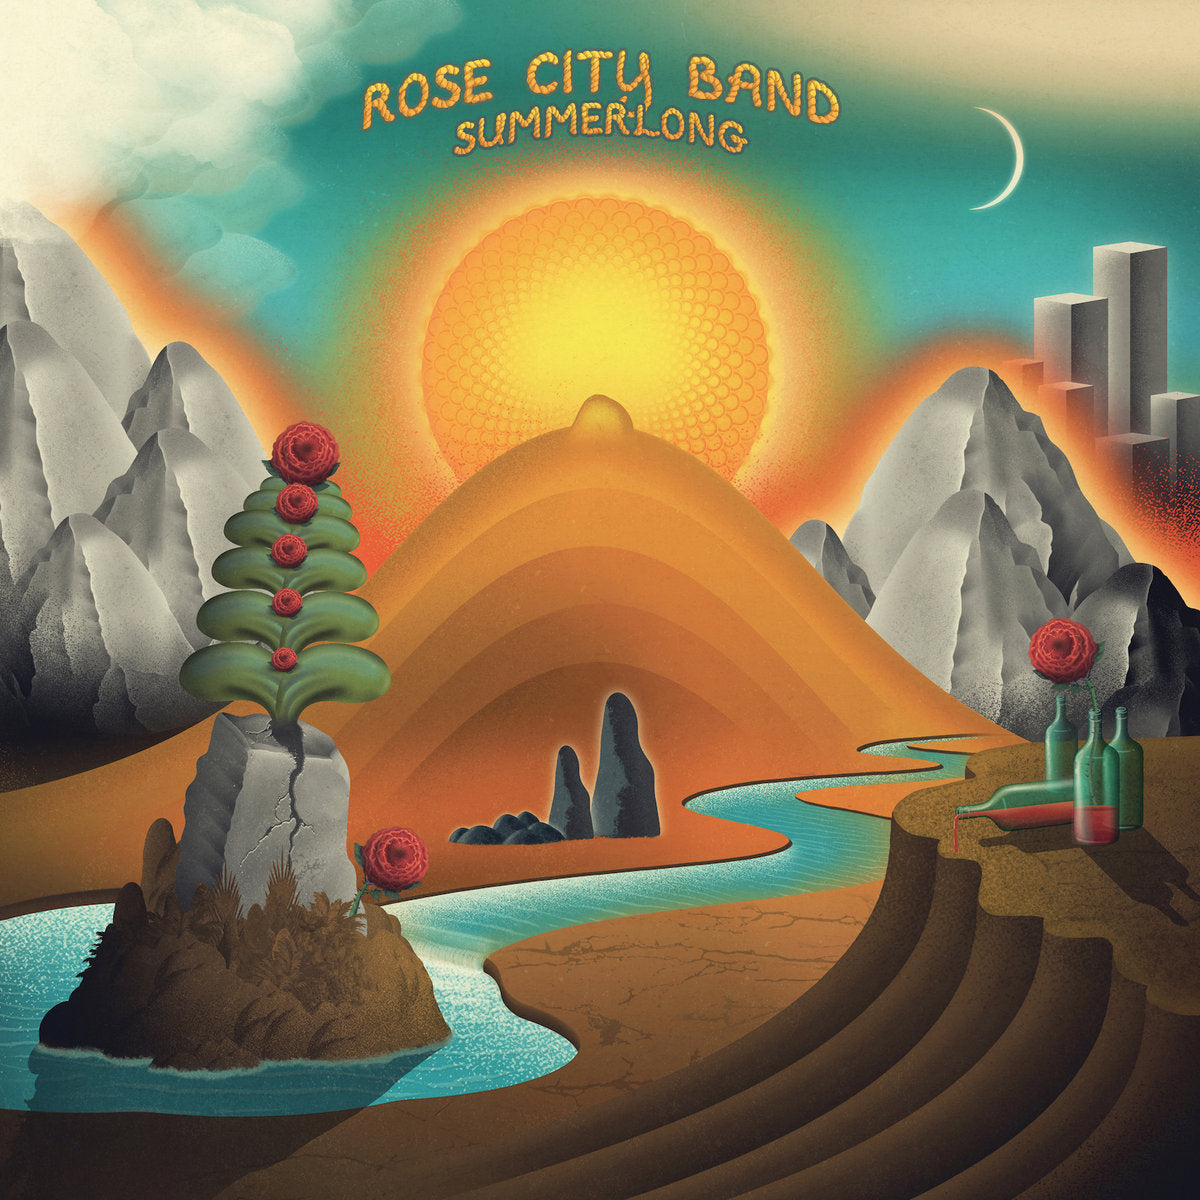 Rose City Band - Summerlong (Love Record Stores) Limited Edition Buttercup Colour Vinyl Record Album